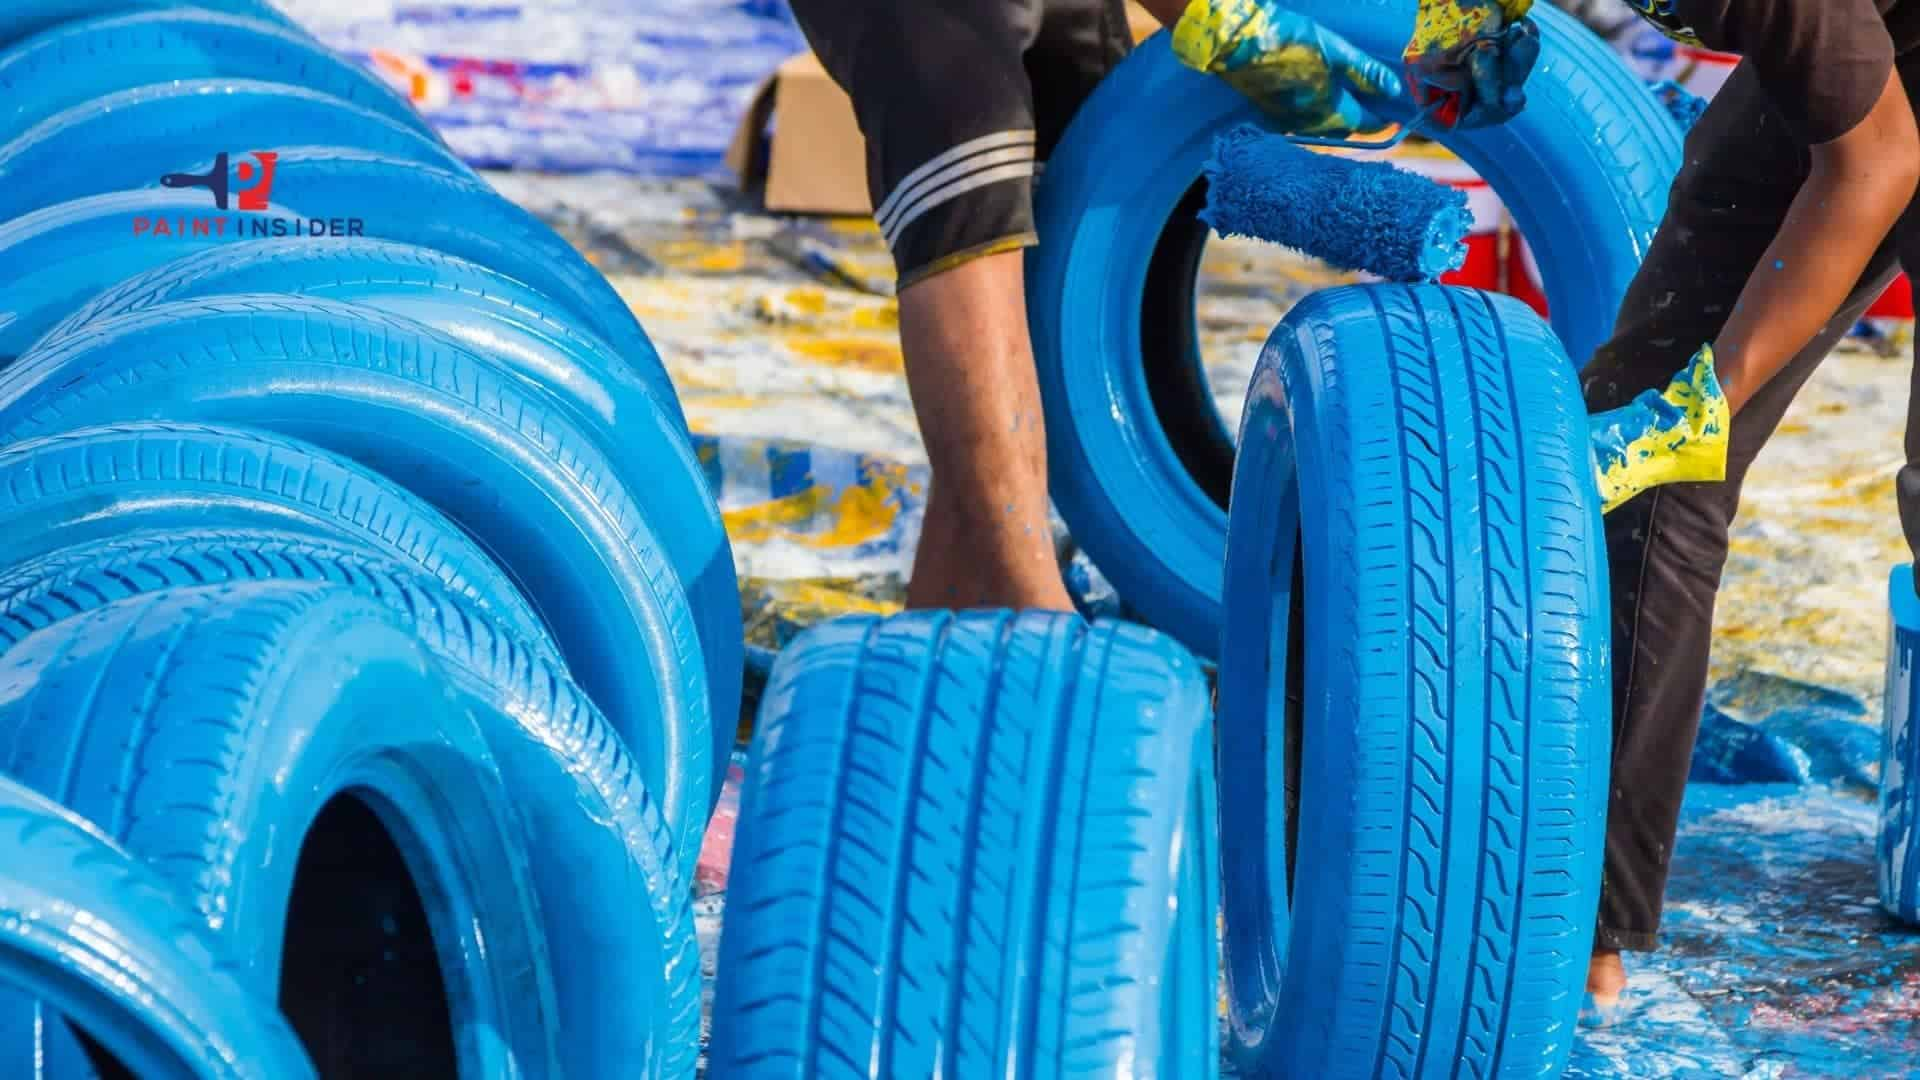 Best Paint To Use On Rubber Tires